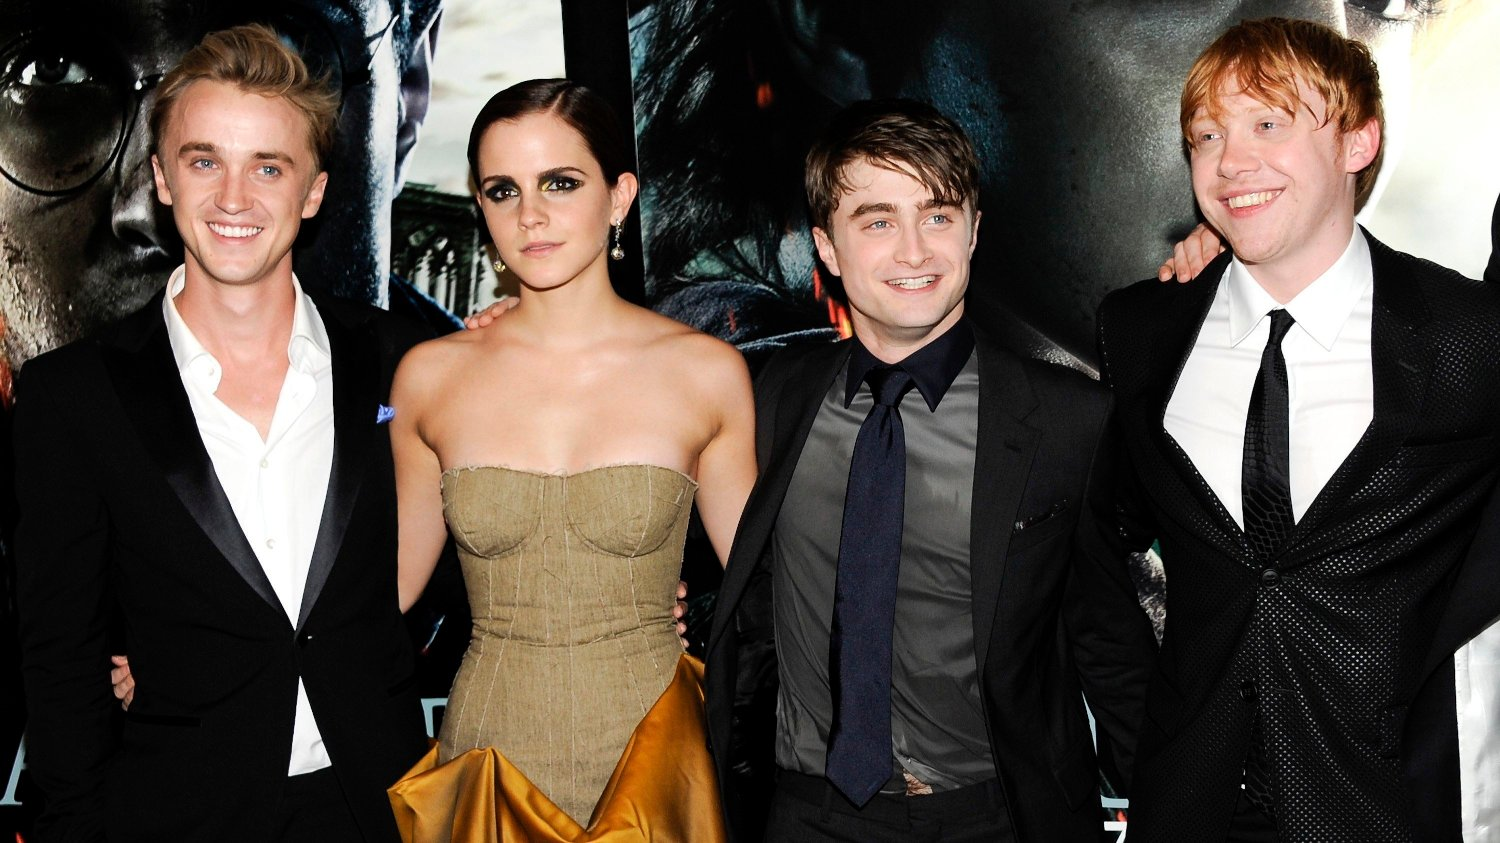 FILE - In this July 11, 2011 file photo, cast members, from left, Tom Felton, Emma Watson, Daniel Radcliffe and Rupert Grint pose together at the premiere of